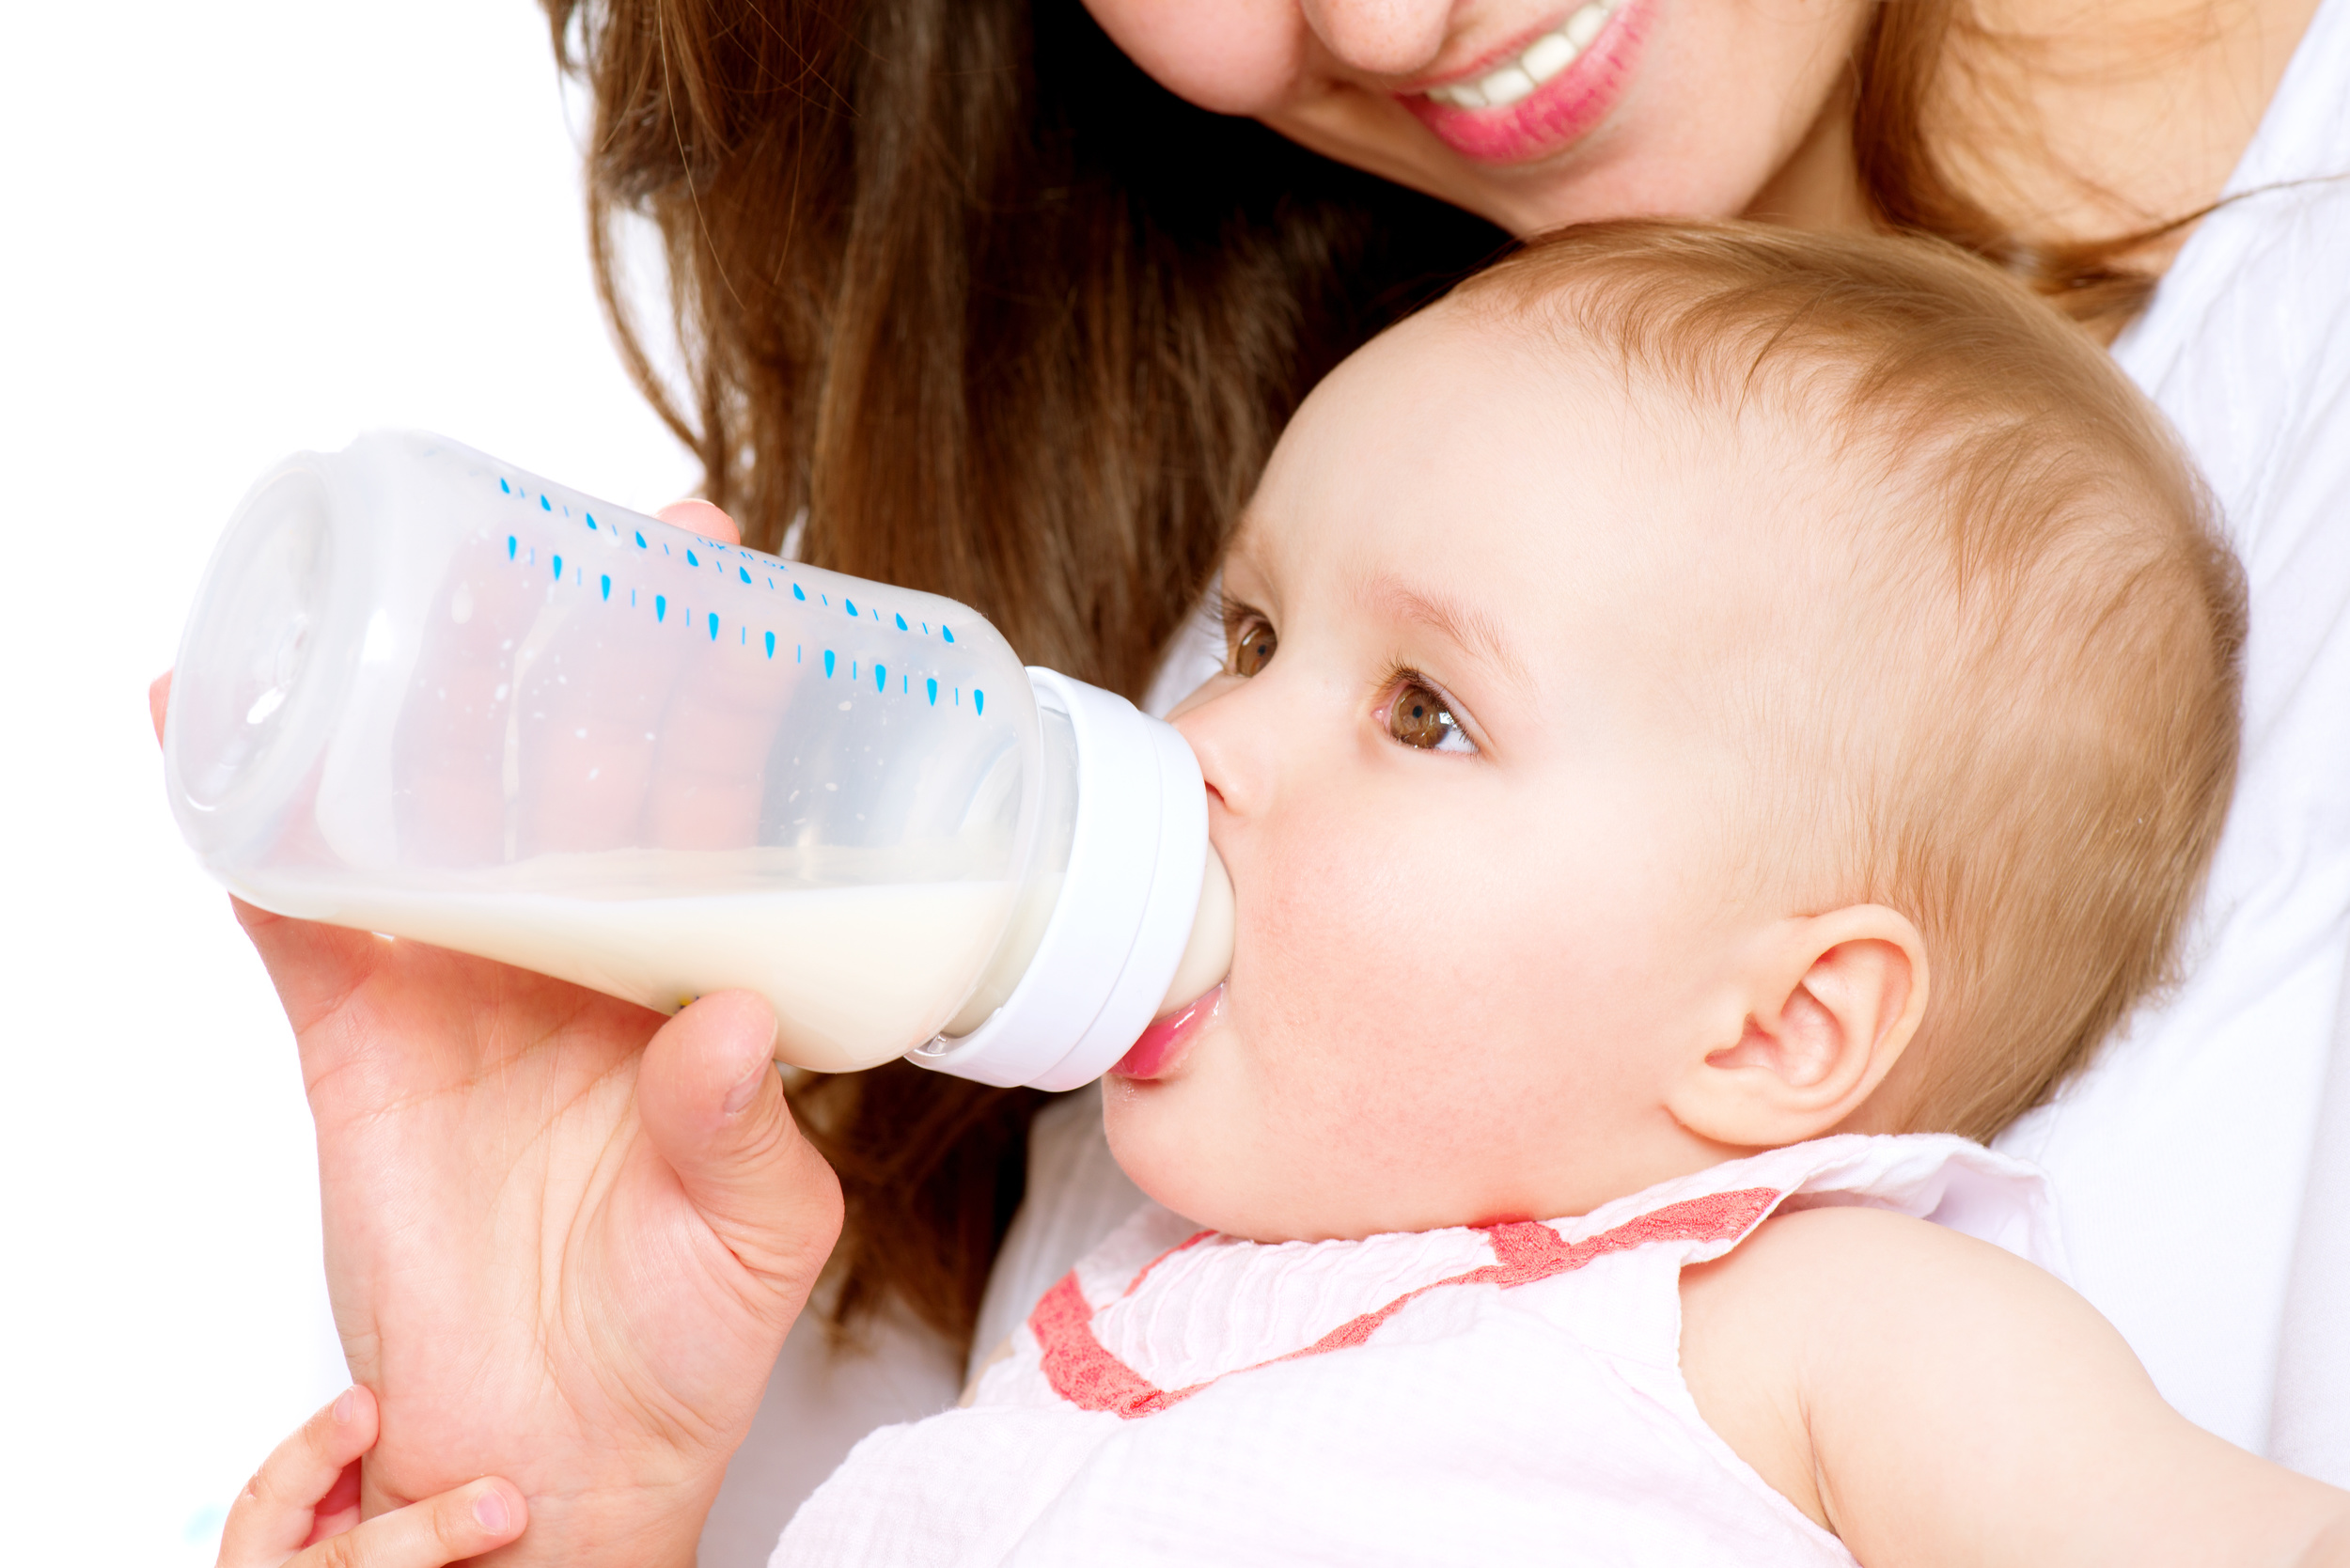 Baby being fed infant formula by mother